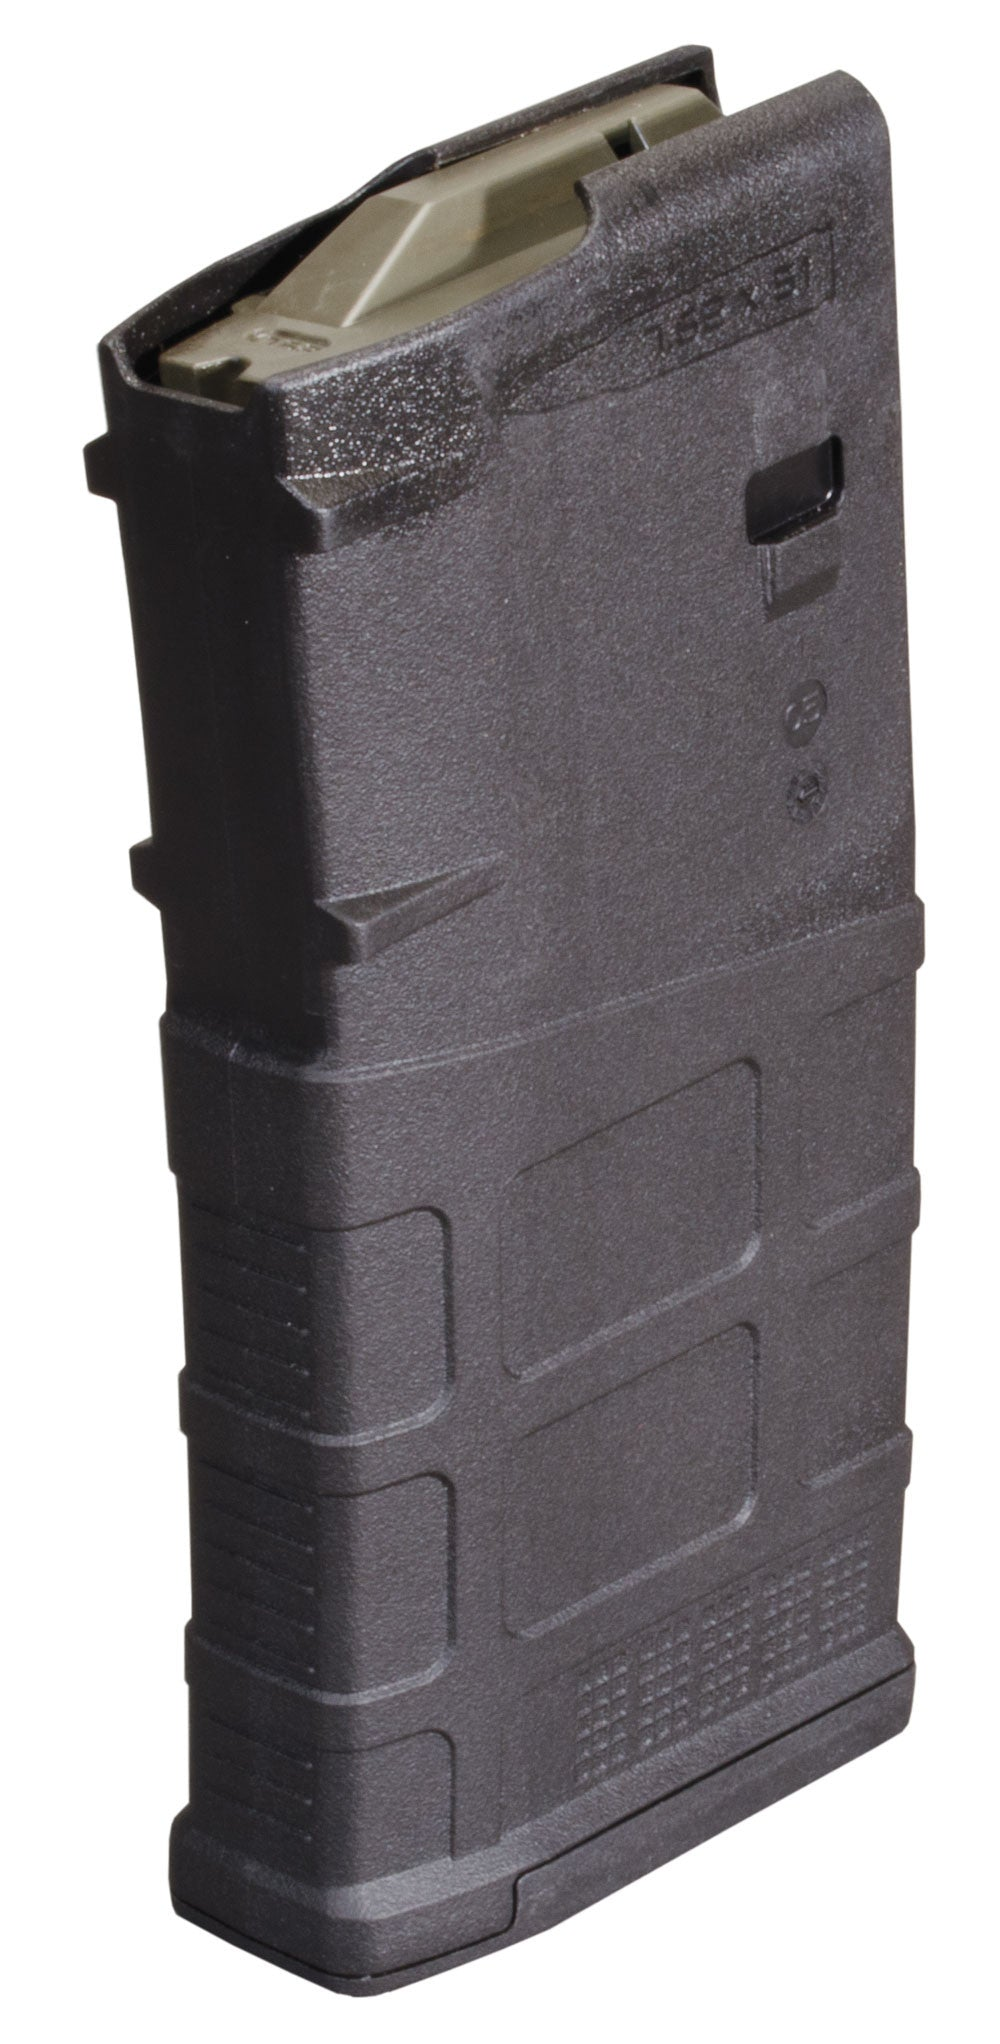 The 7.62x51 NATO (.308 Winchester) PMAG 20LR is a cost effective high  reliability magazine for SR25/M110 pattern rifles* featuring true 20-round  capacity, ...